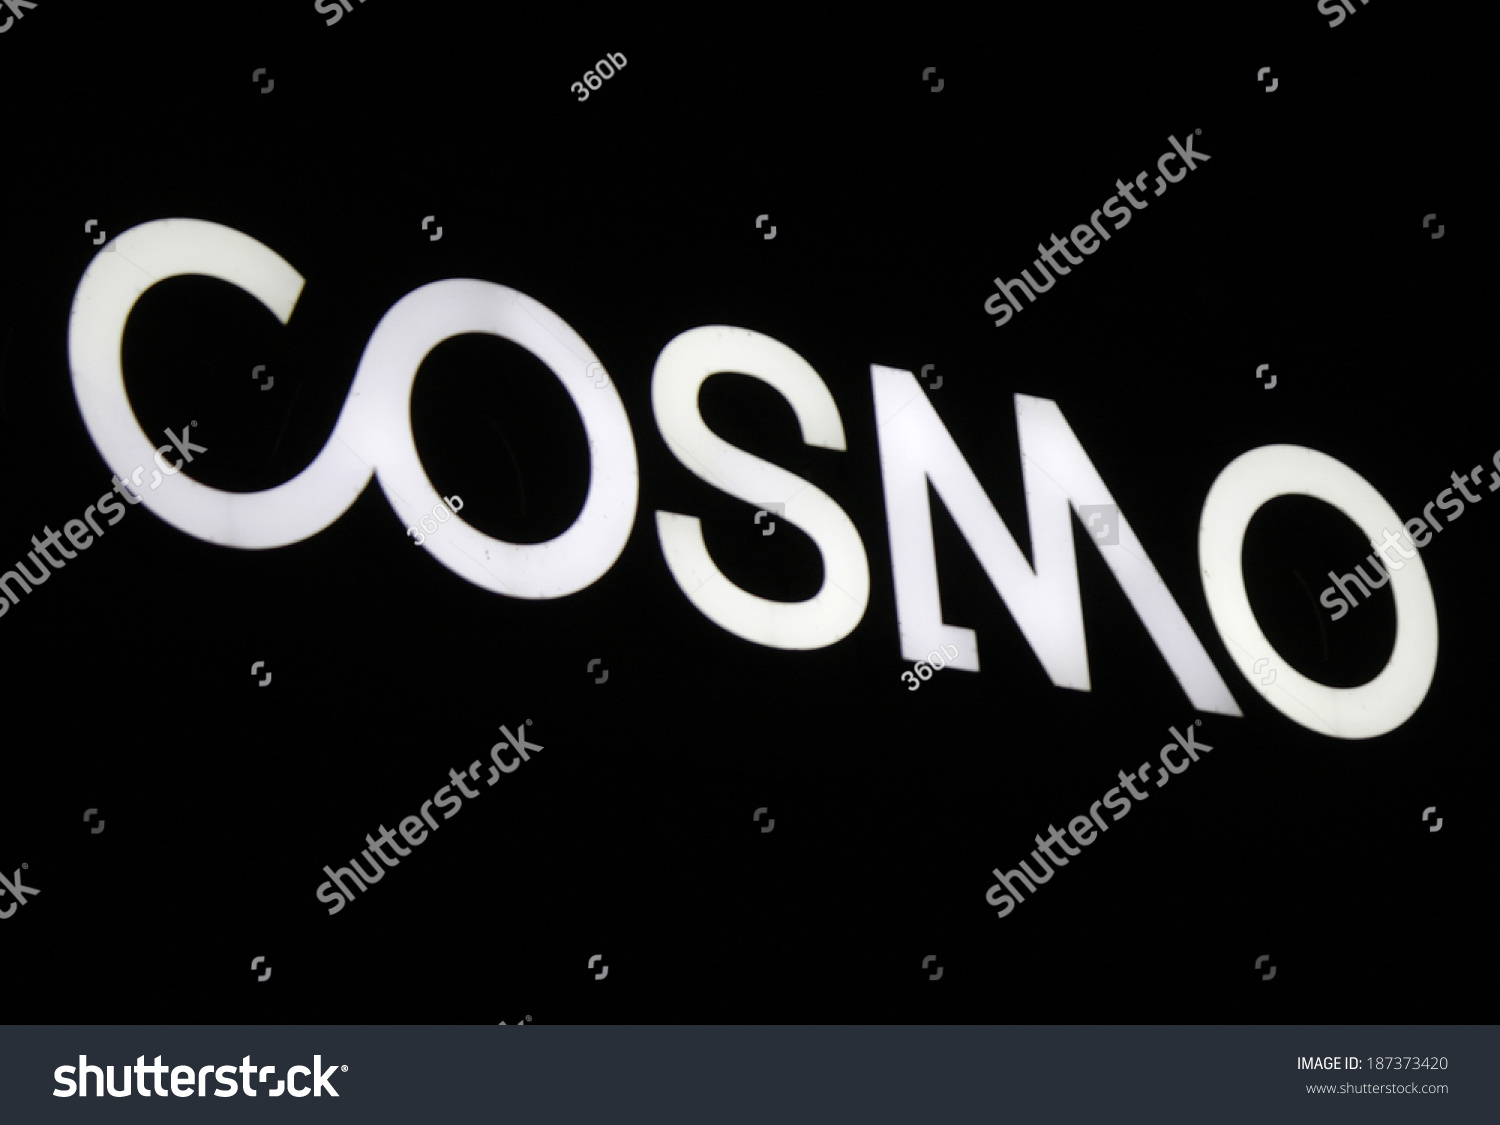 Cosmo Berlin March 28 2014 Berlin Logo Brand Stock Photo Edit Now 187373420